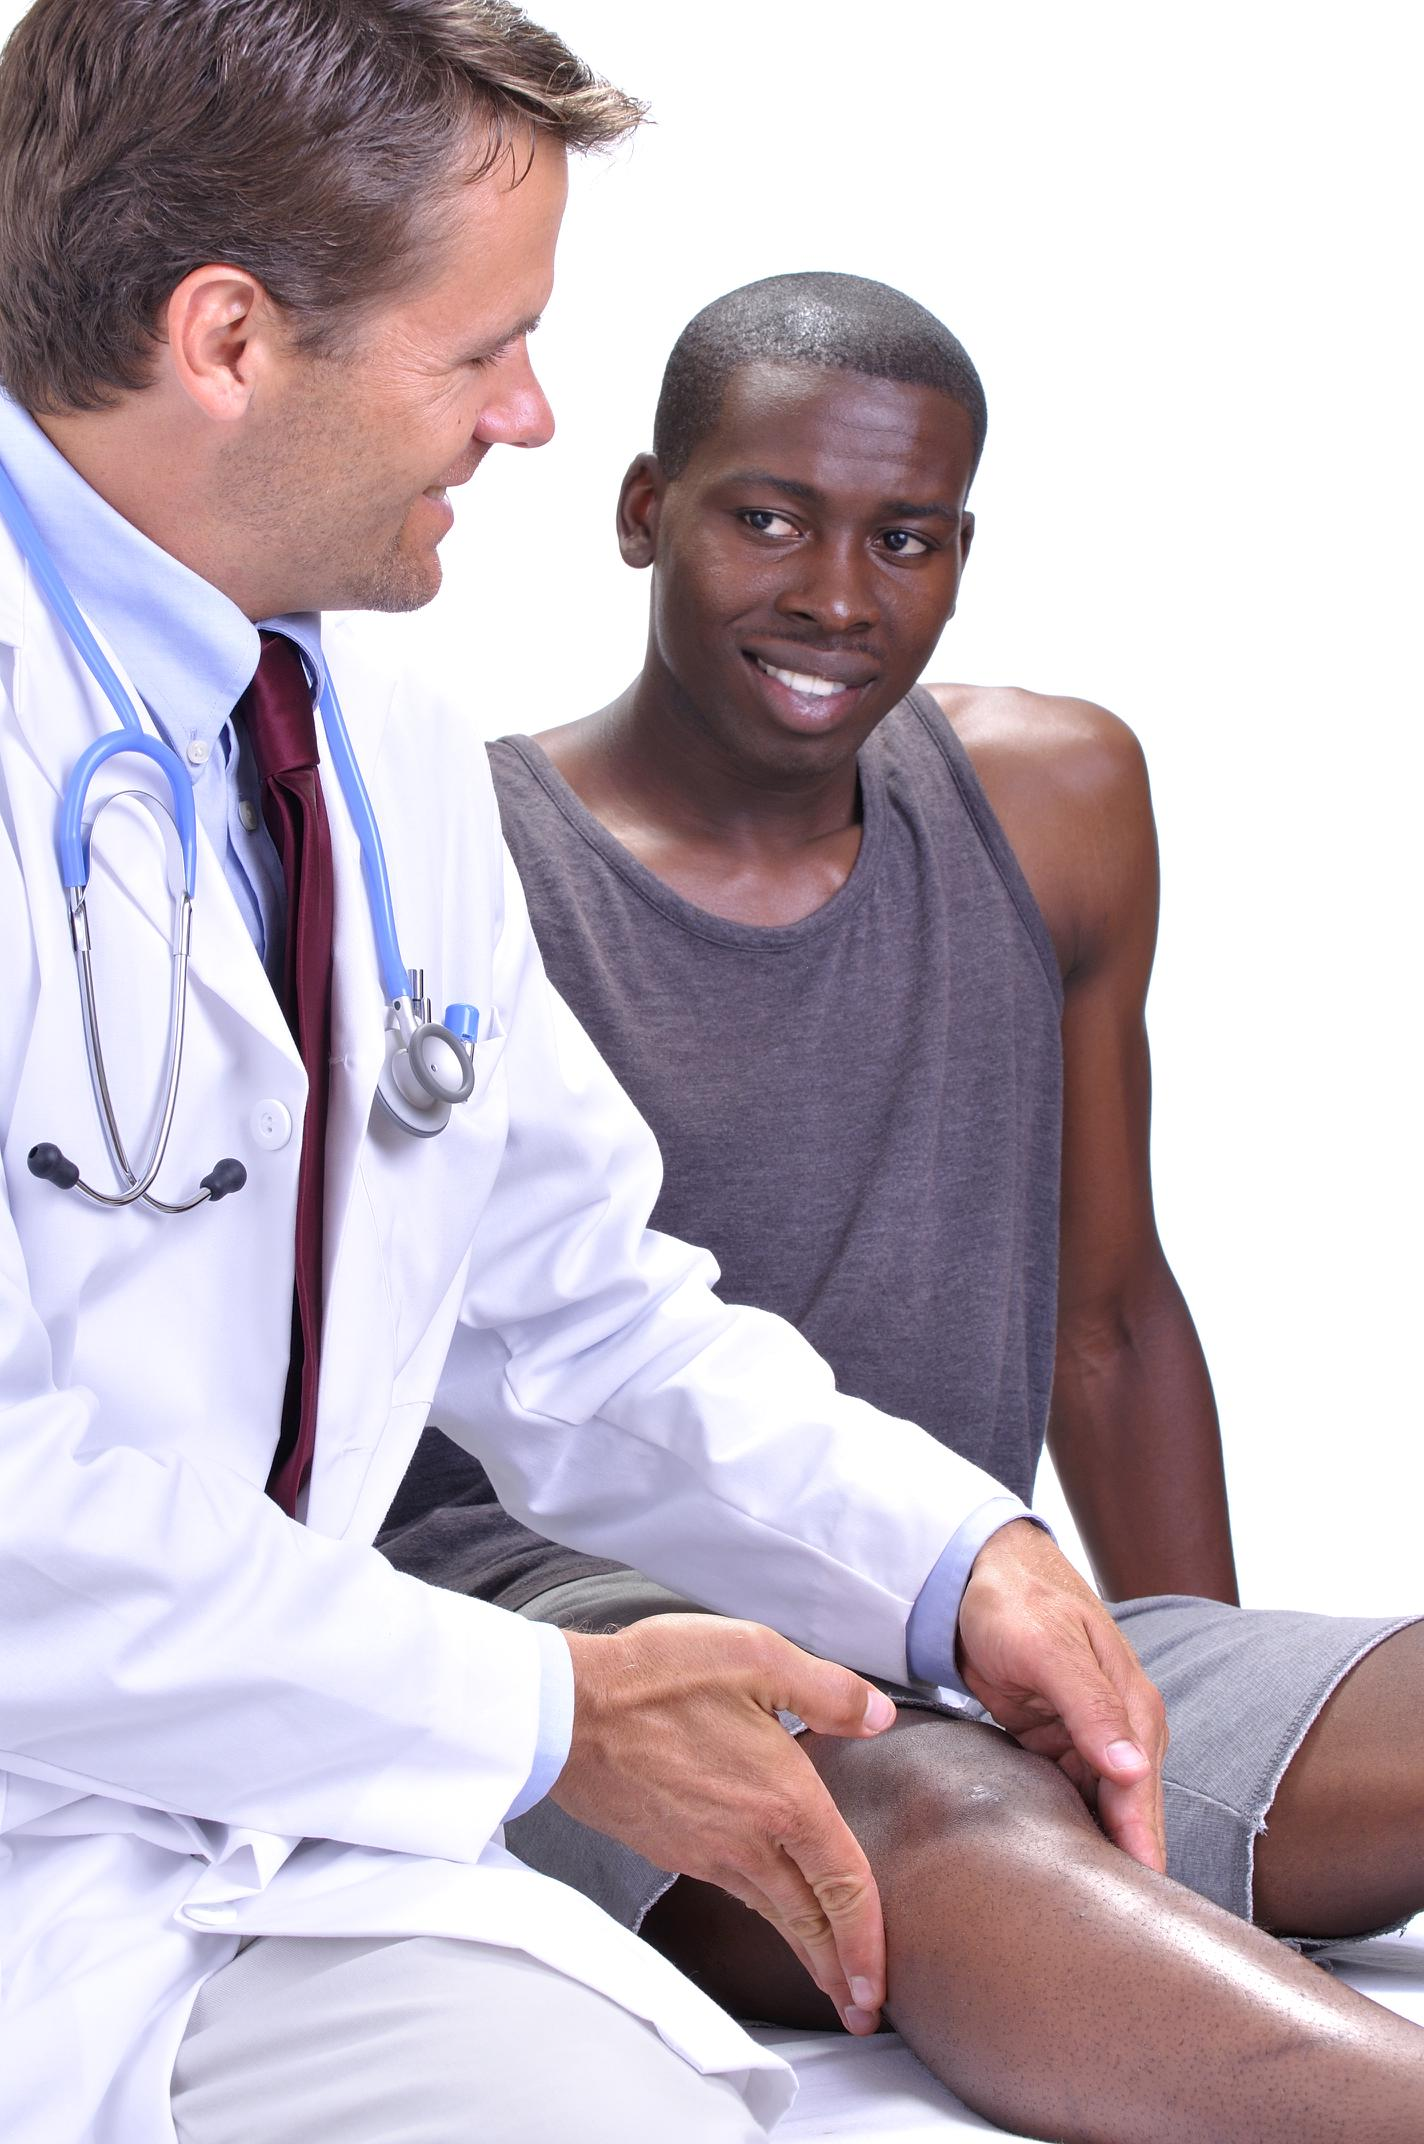 Doctor examining an athlete